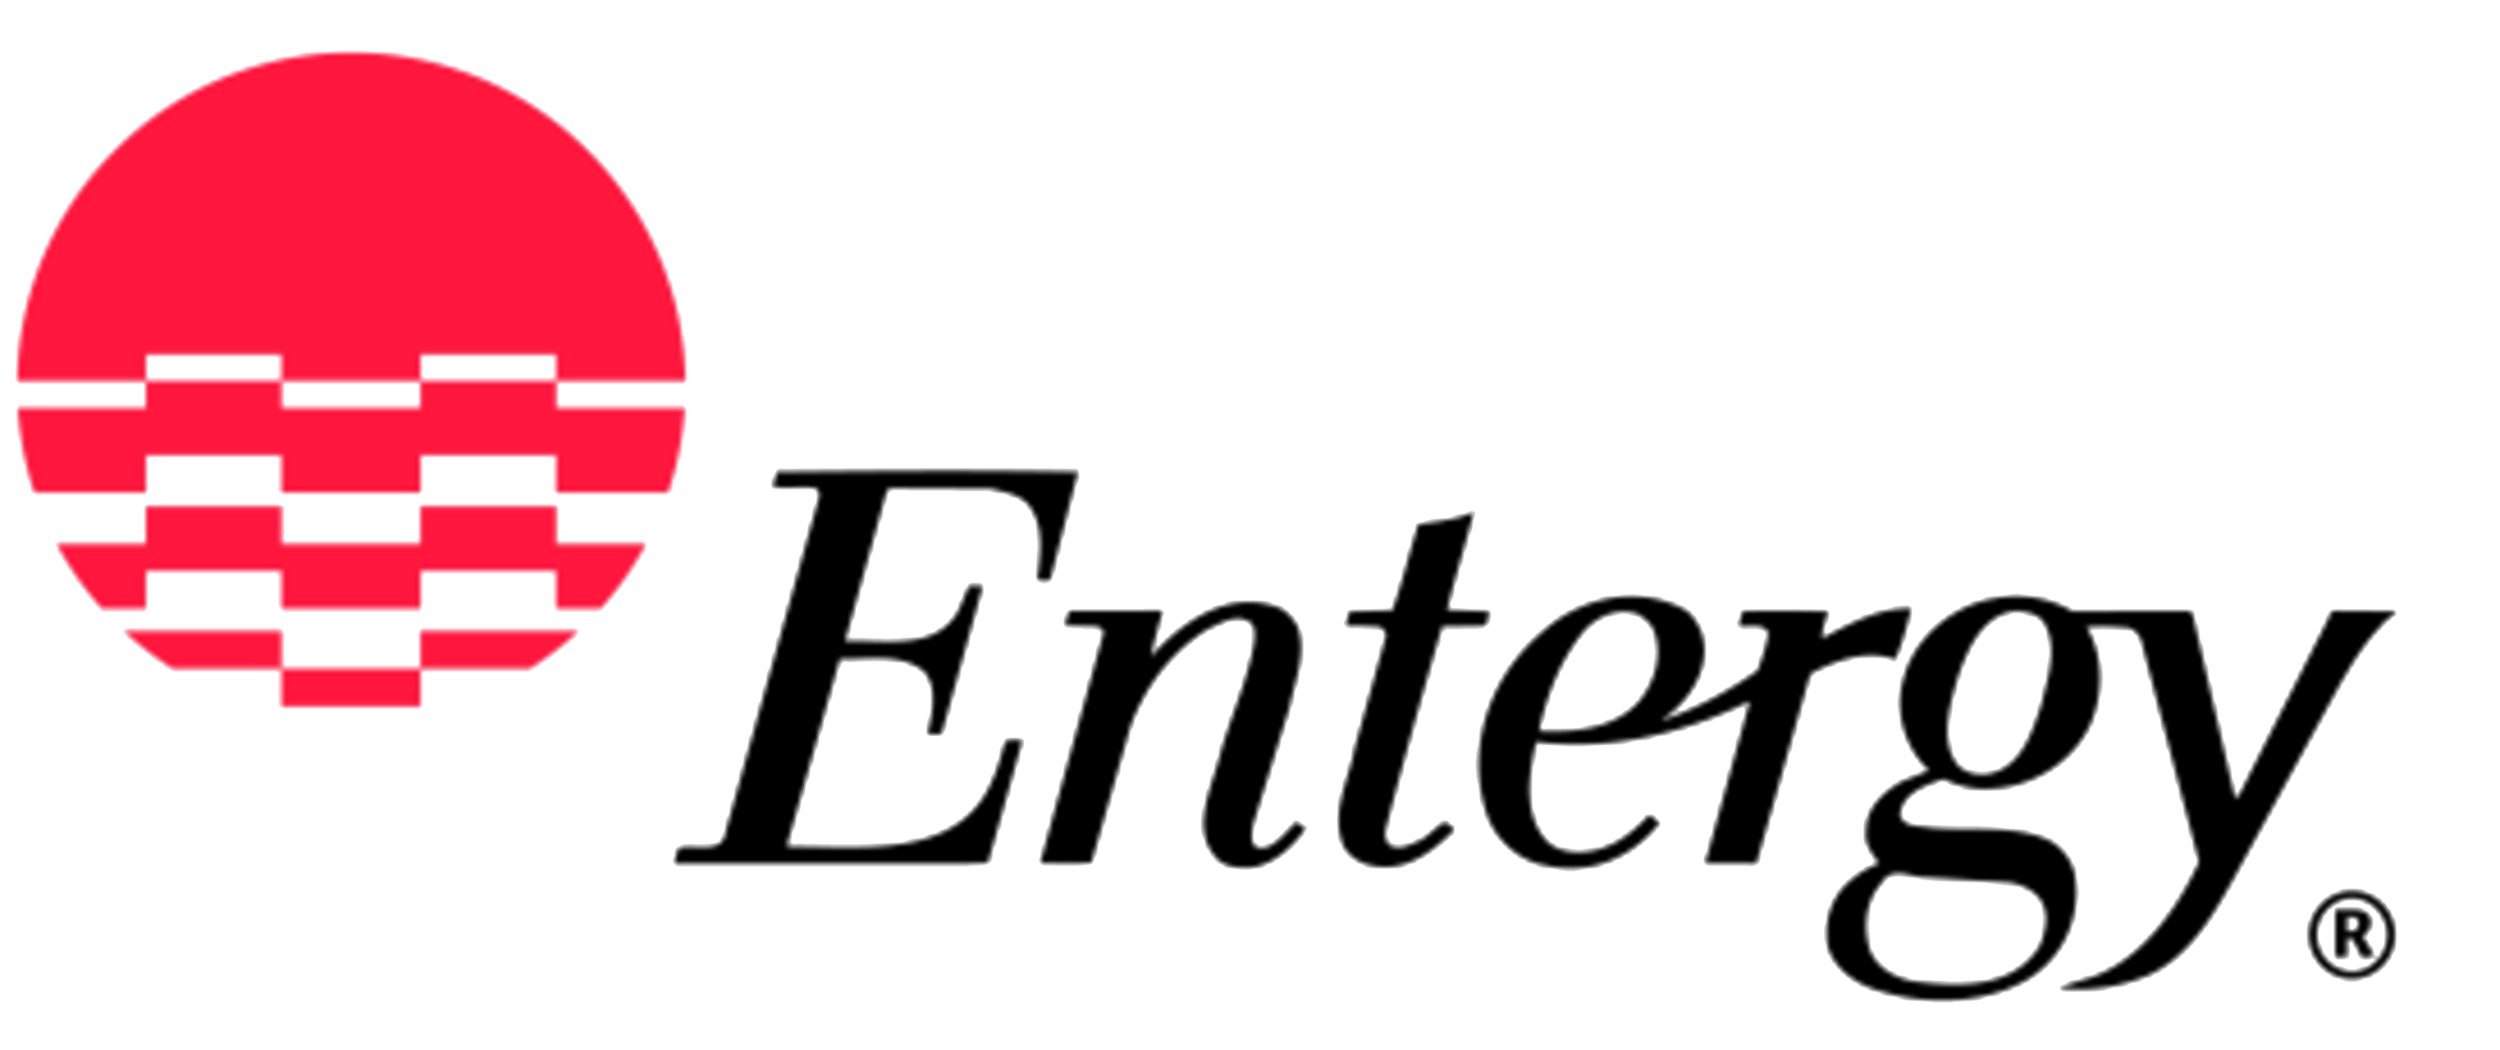 Entergy Corporation - To improve the quality of life in communities where Entergy operates through strategic investments in education/workforce development, low income/poverty solutions and environmental programs.